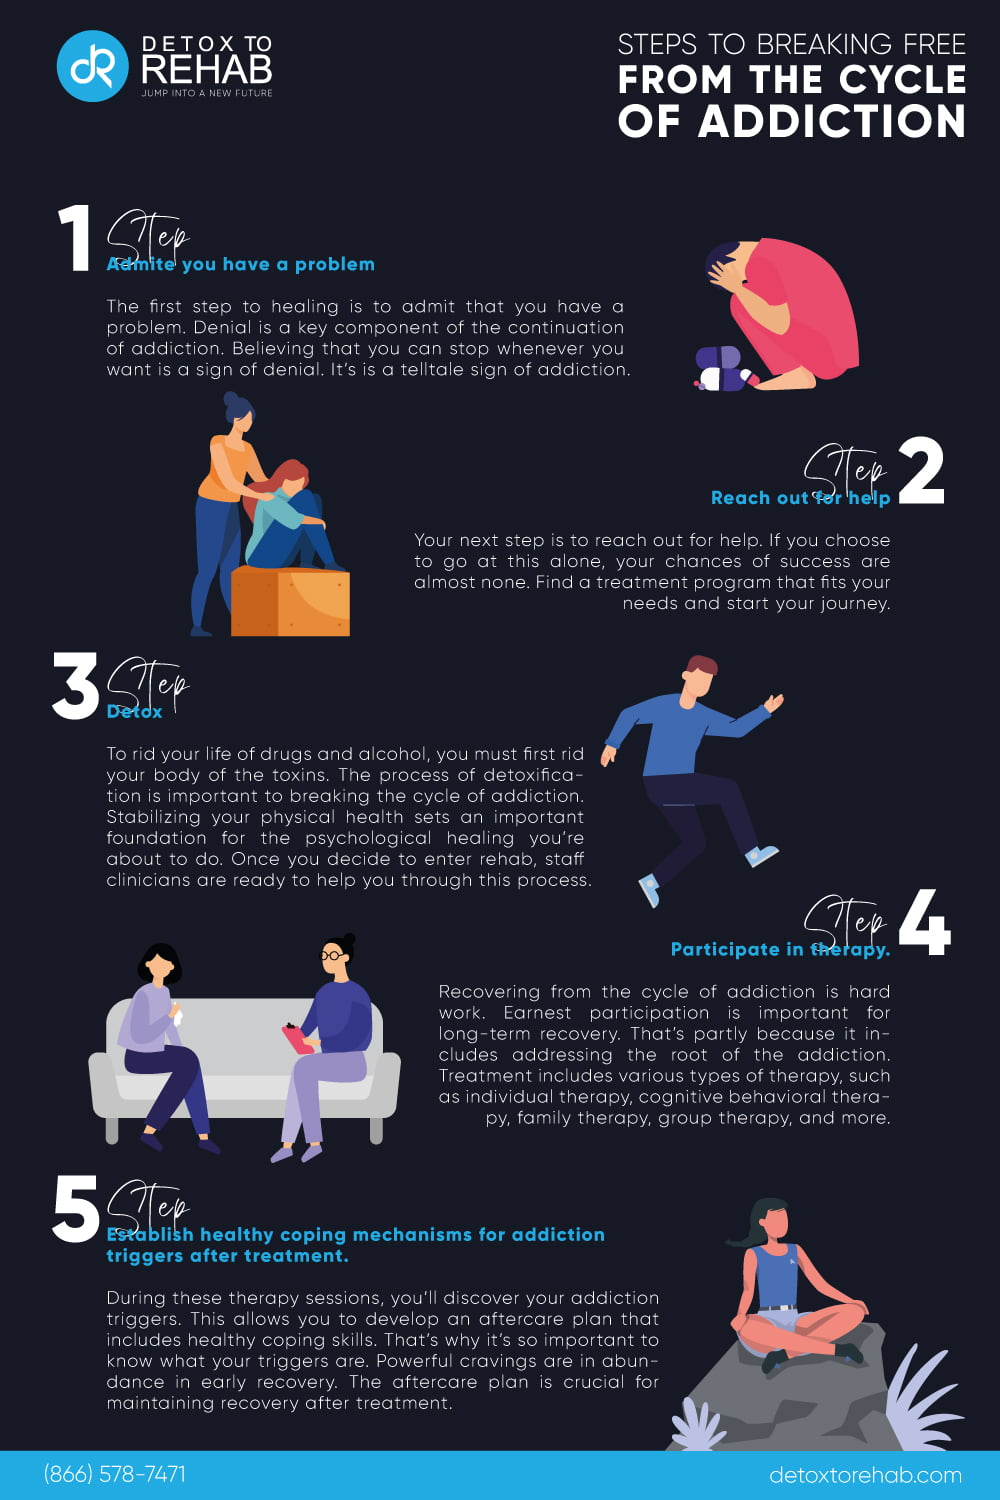 5 Steps to Breaking Free from the Cycle of Addiction infographic